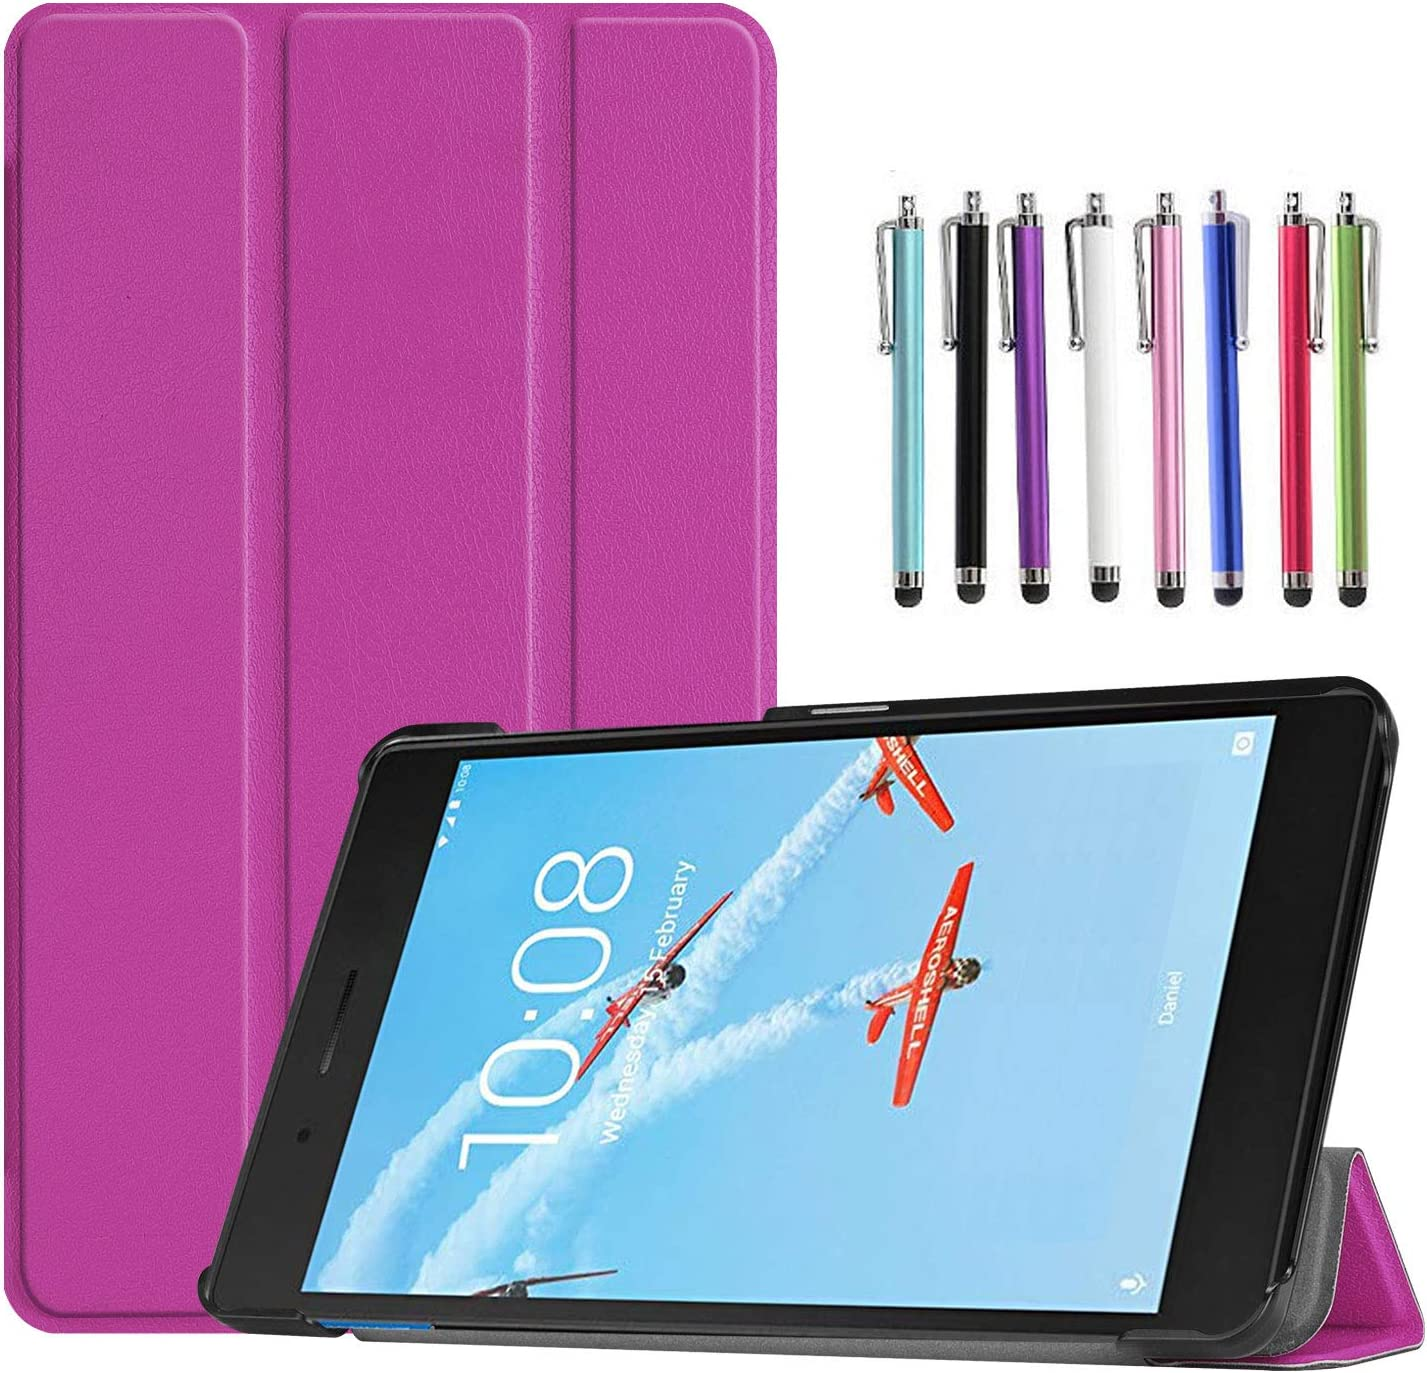 Epicgadget Case for Lenovo Tab E8 (TB-8304F), Slim Lightweight Tri fold Stand Cover Case for Lenovo Tablet 2018 Tab E 8 8 Inch Display (Purple)